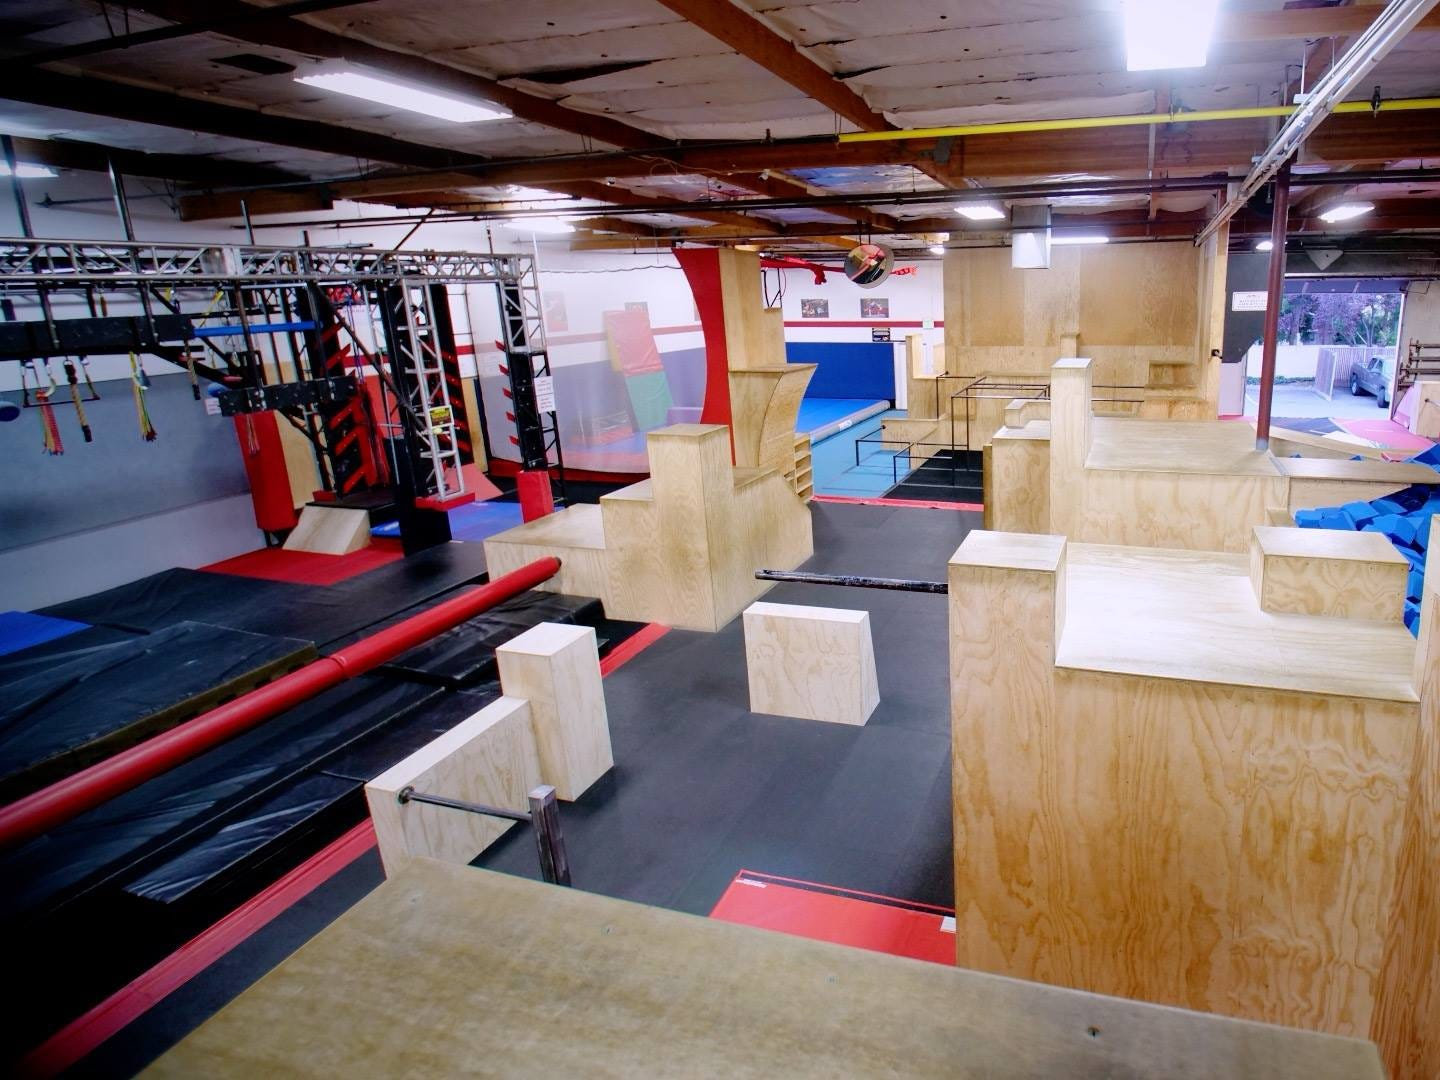 The APEX School of Movement Norcal in Concord, California, was one of the first to feature show-quality obstacles.